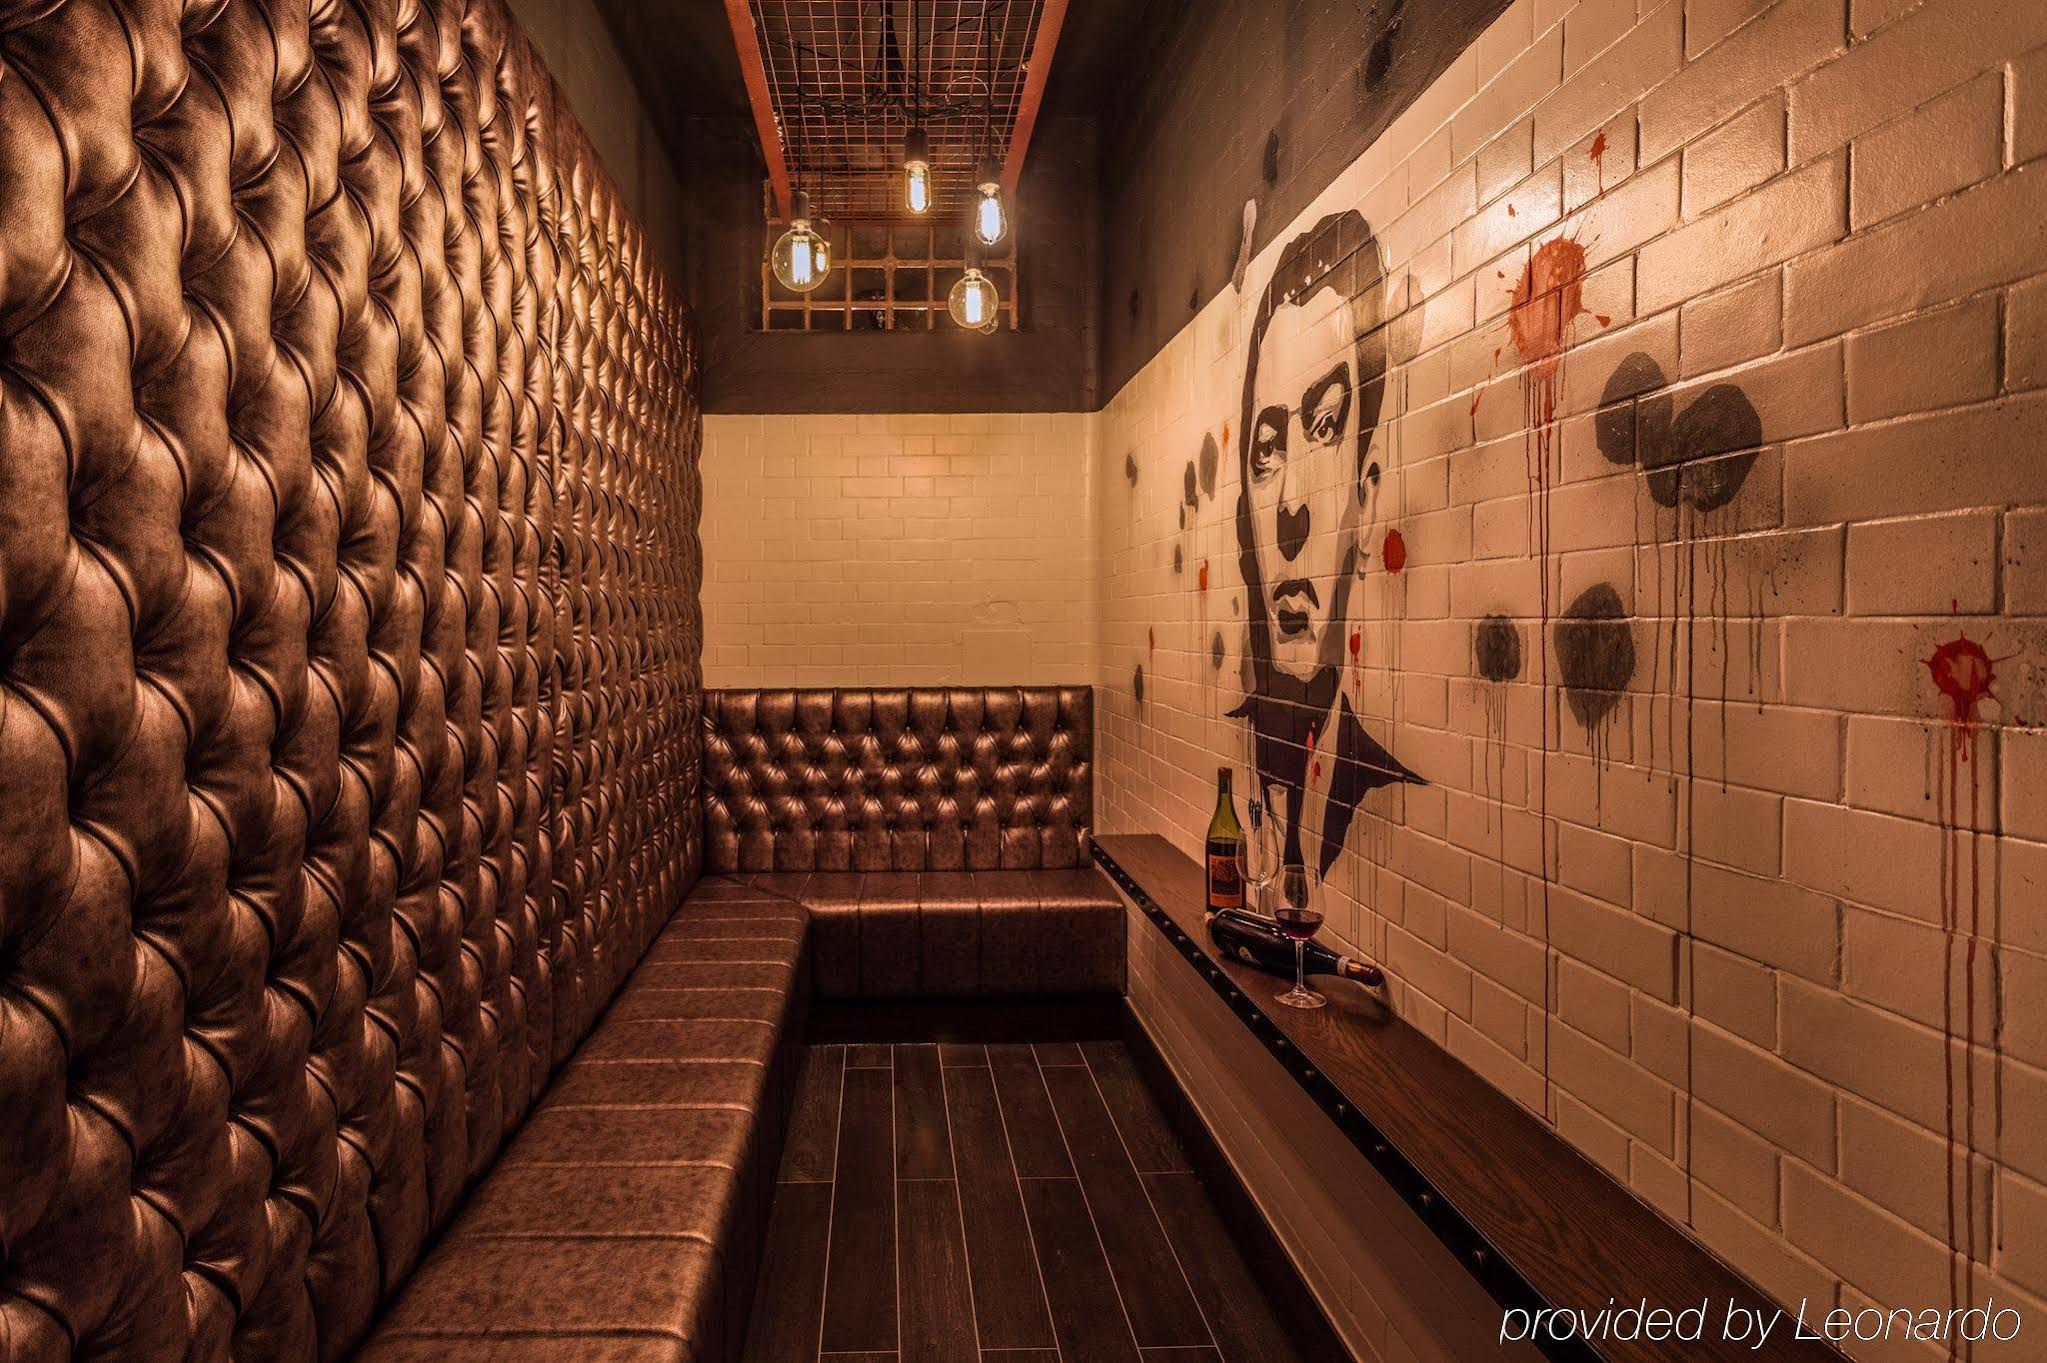 Courthouse Hotel Shoreditch London 335 337 Old Hoxton Ec1v 9ll